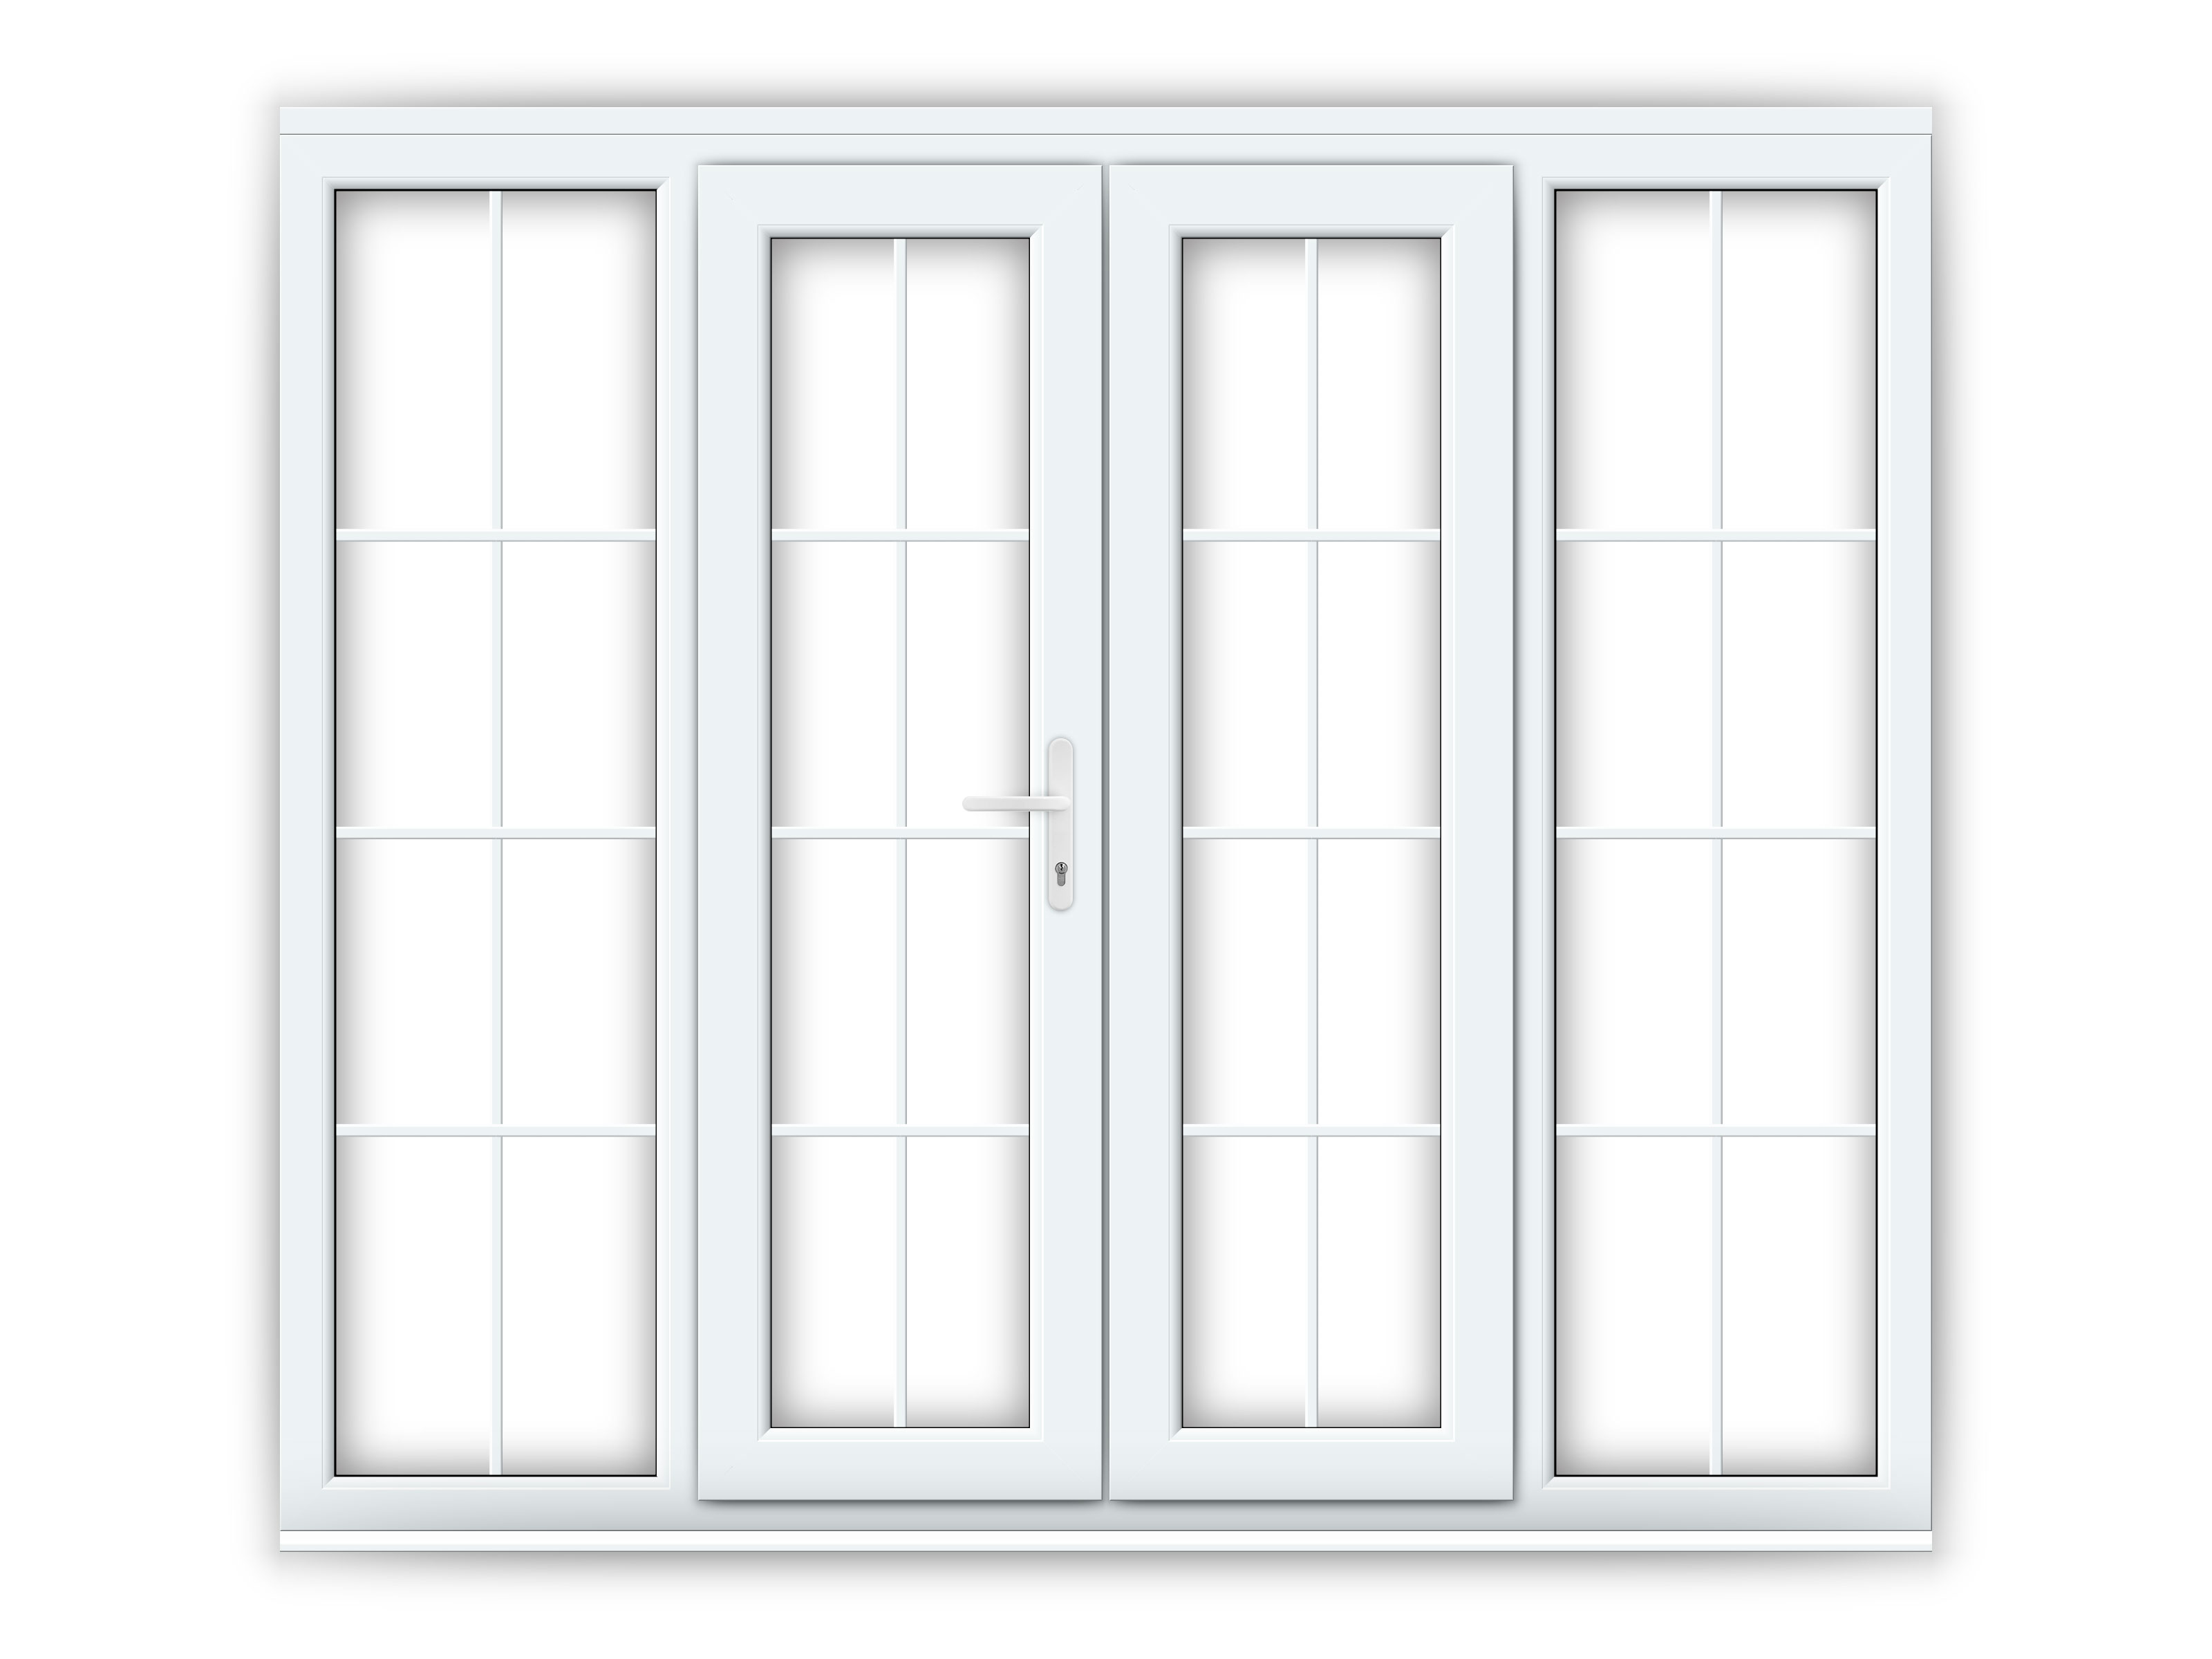 4ft white upvc georgian french doors with wide side panels for 5 foot wide french patio doors